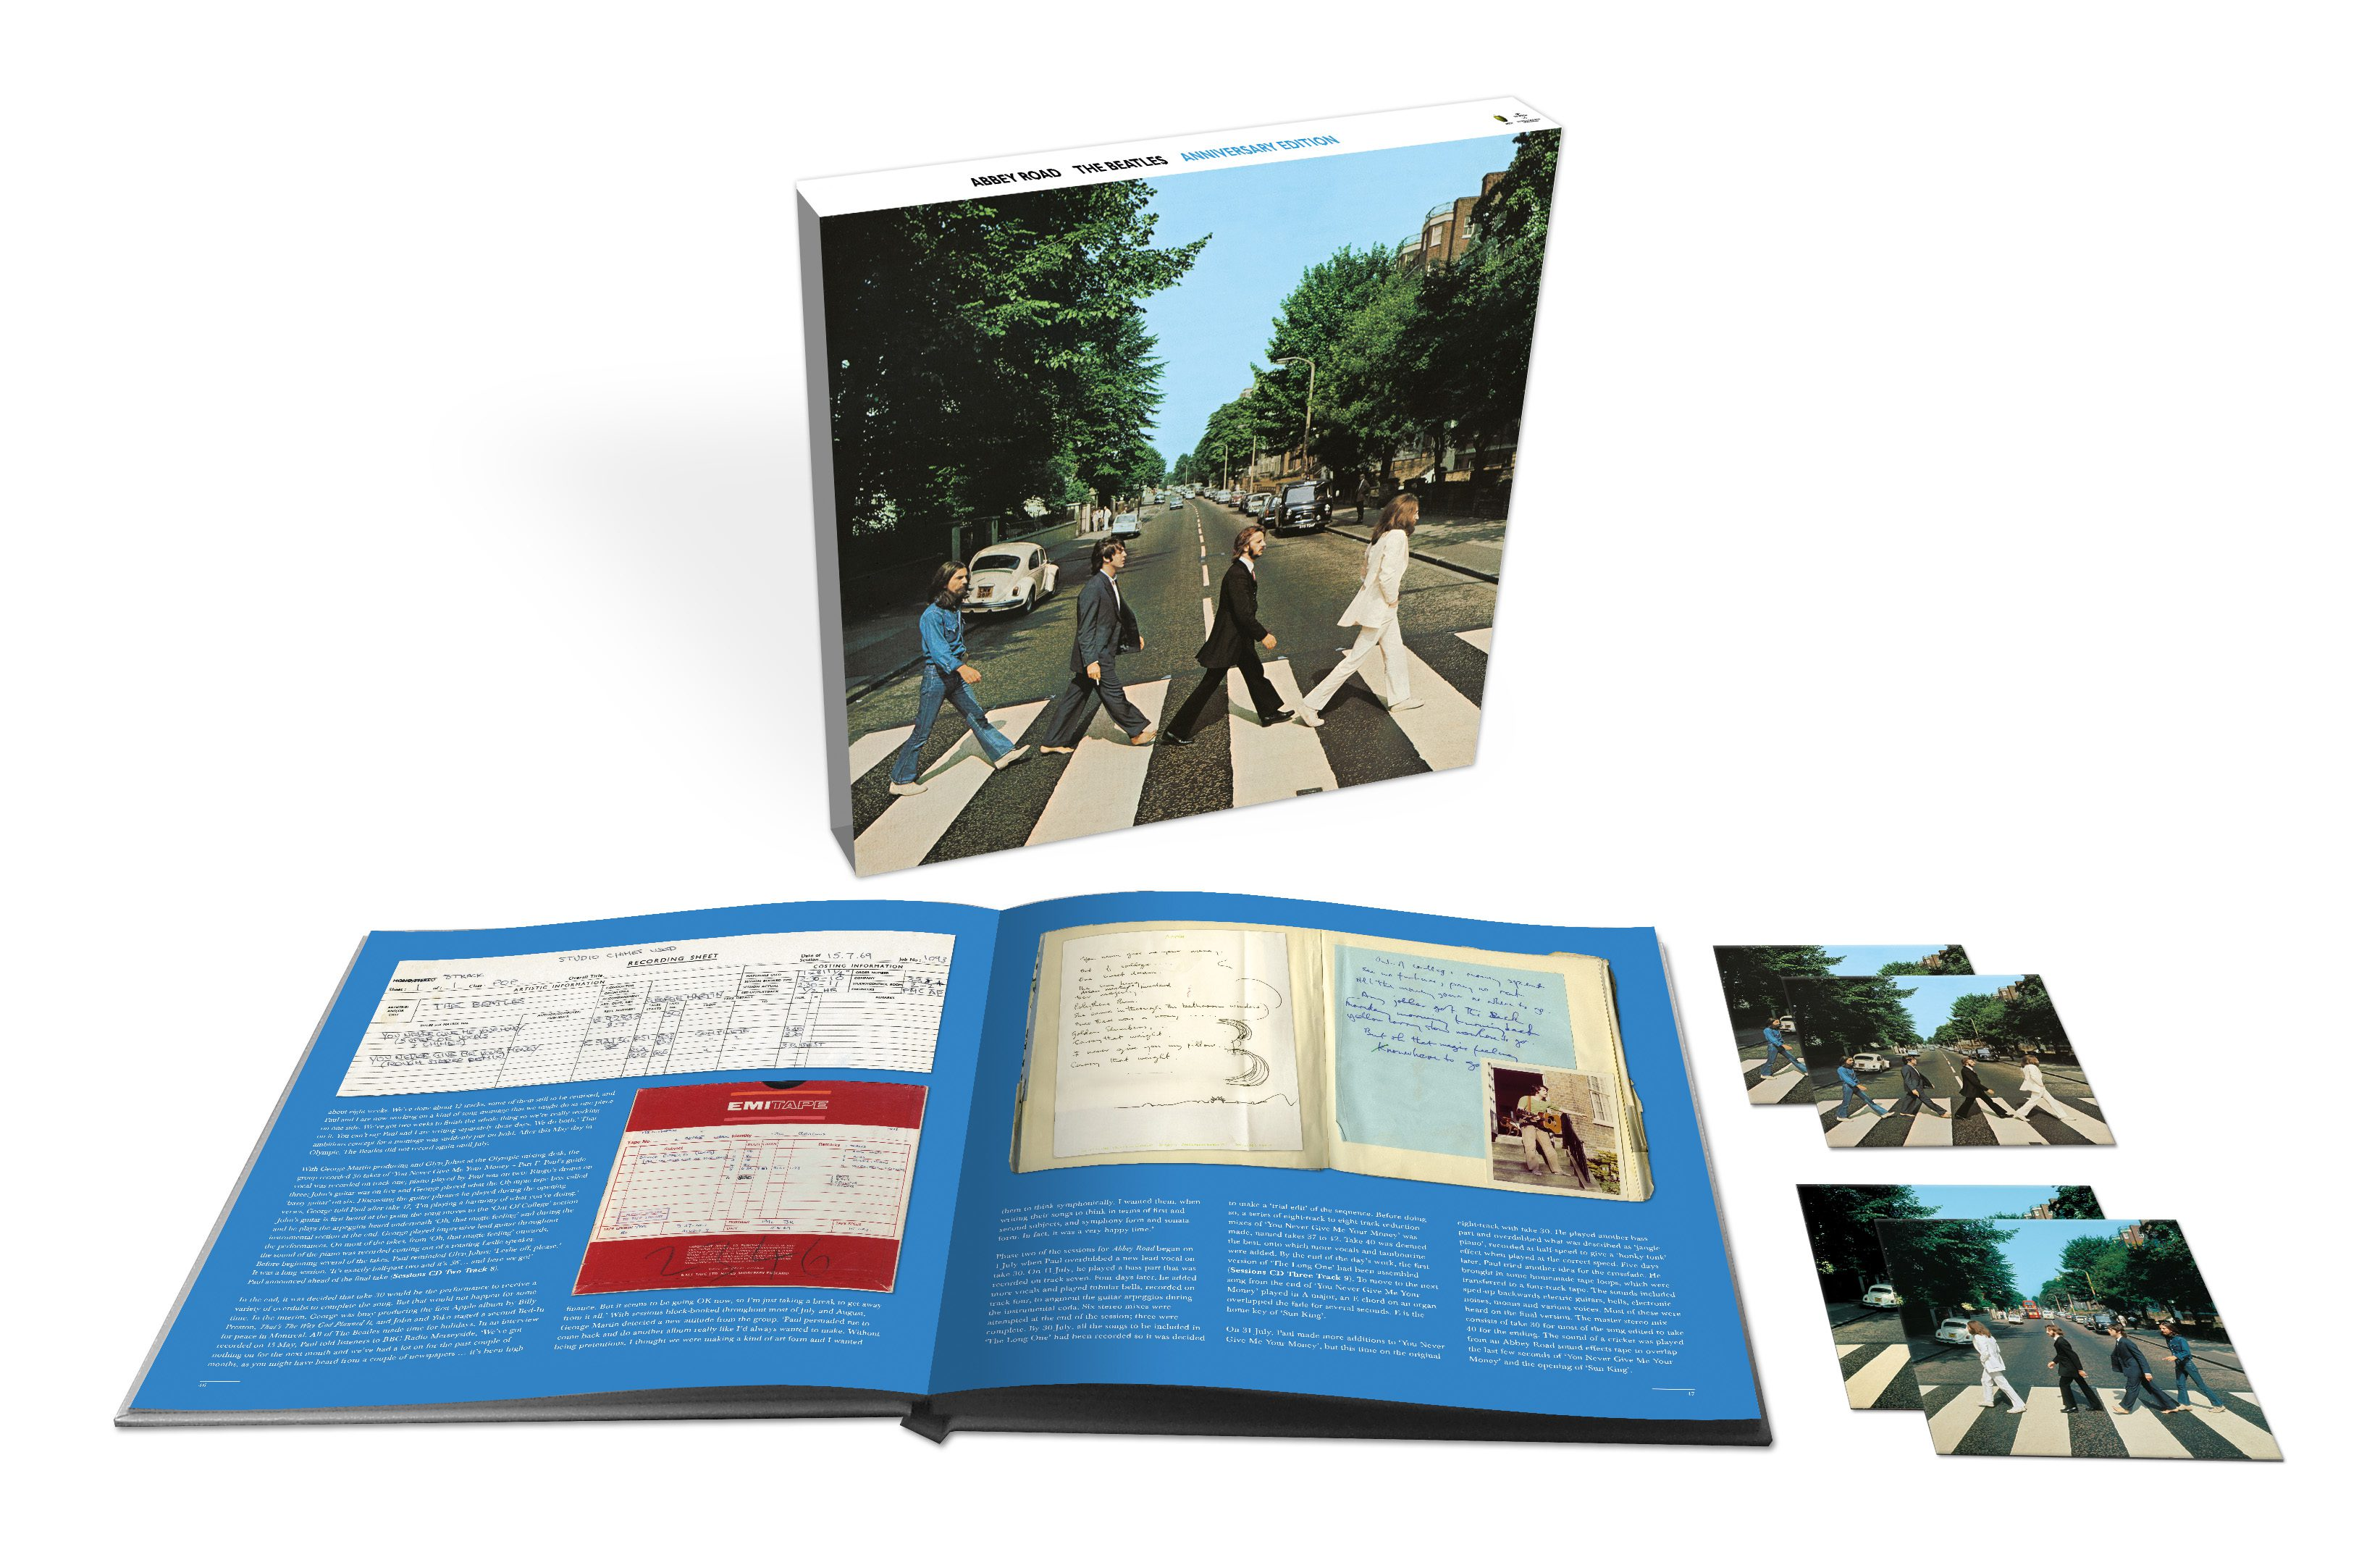 THE BEATLES REVISIT, ABBEY ROAD, WITH SPECIAL 50TH